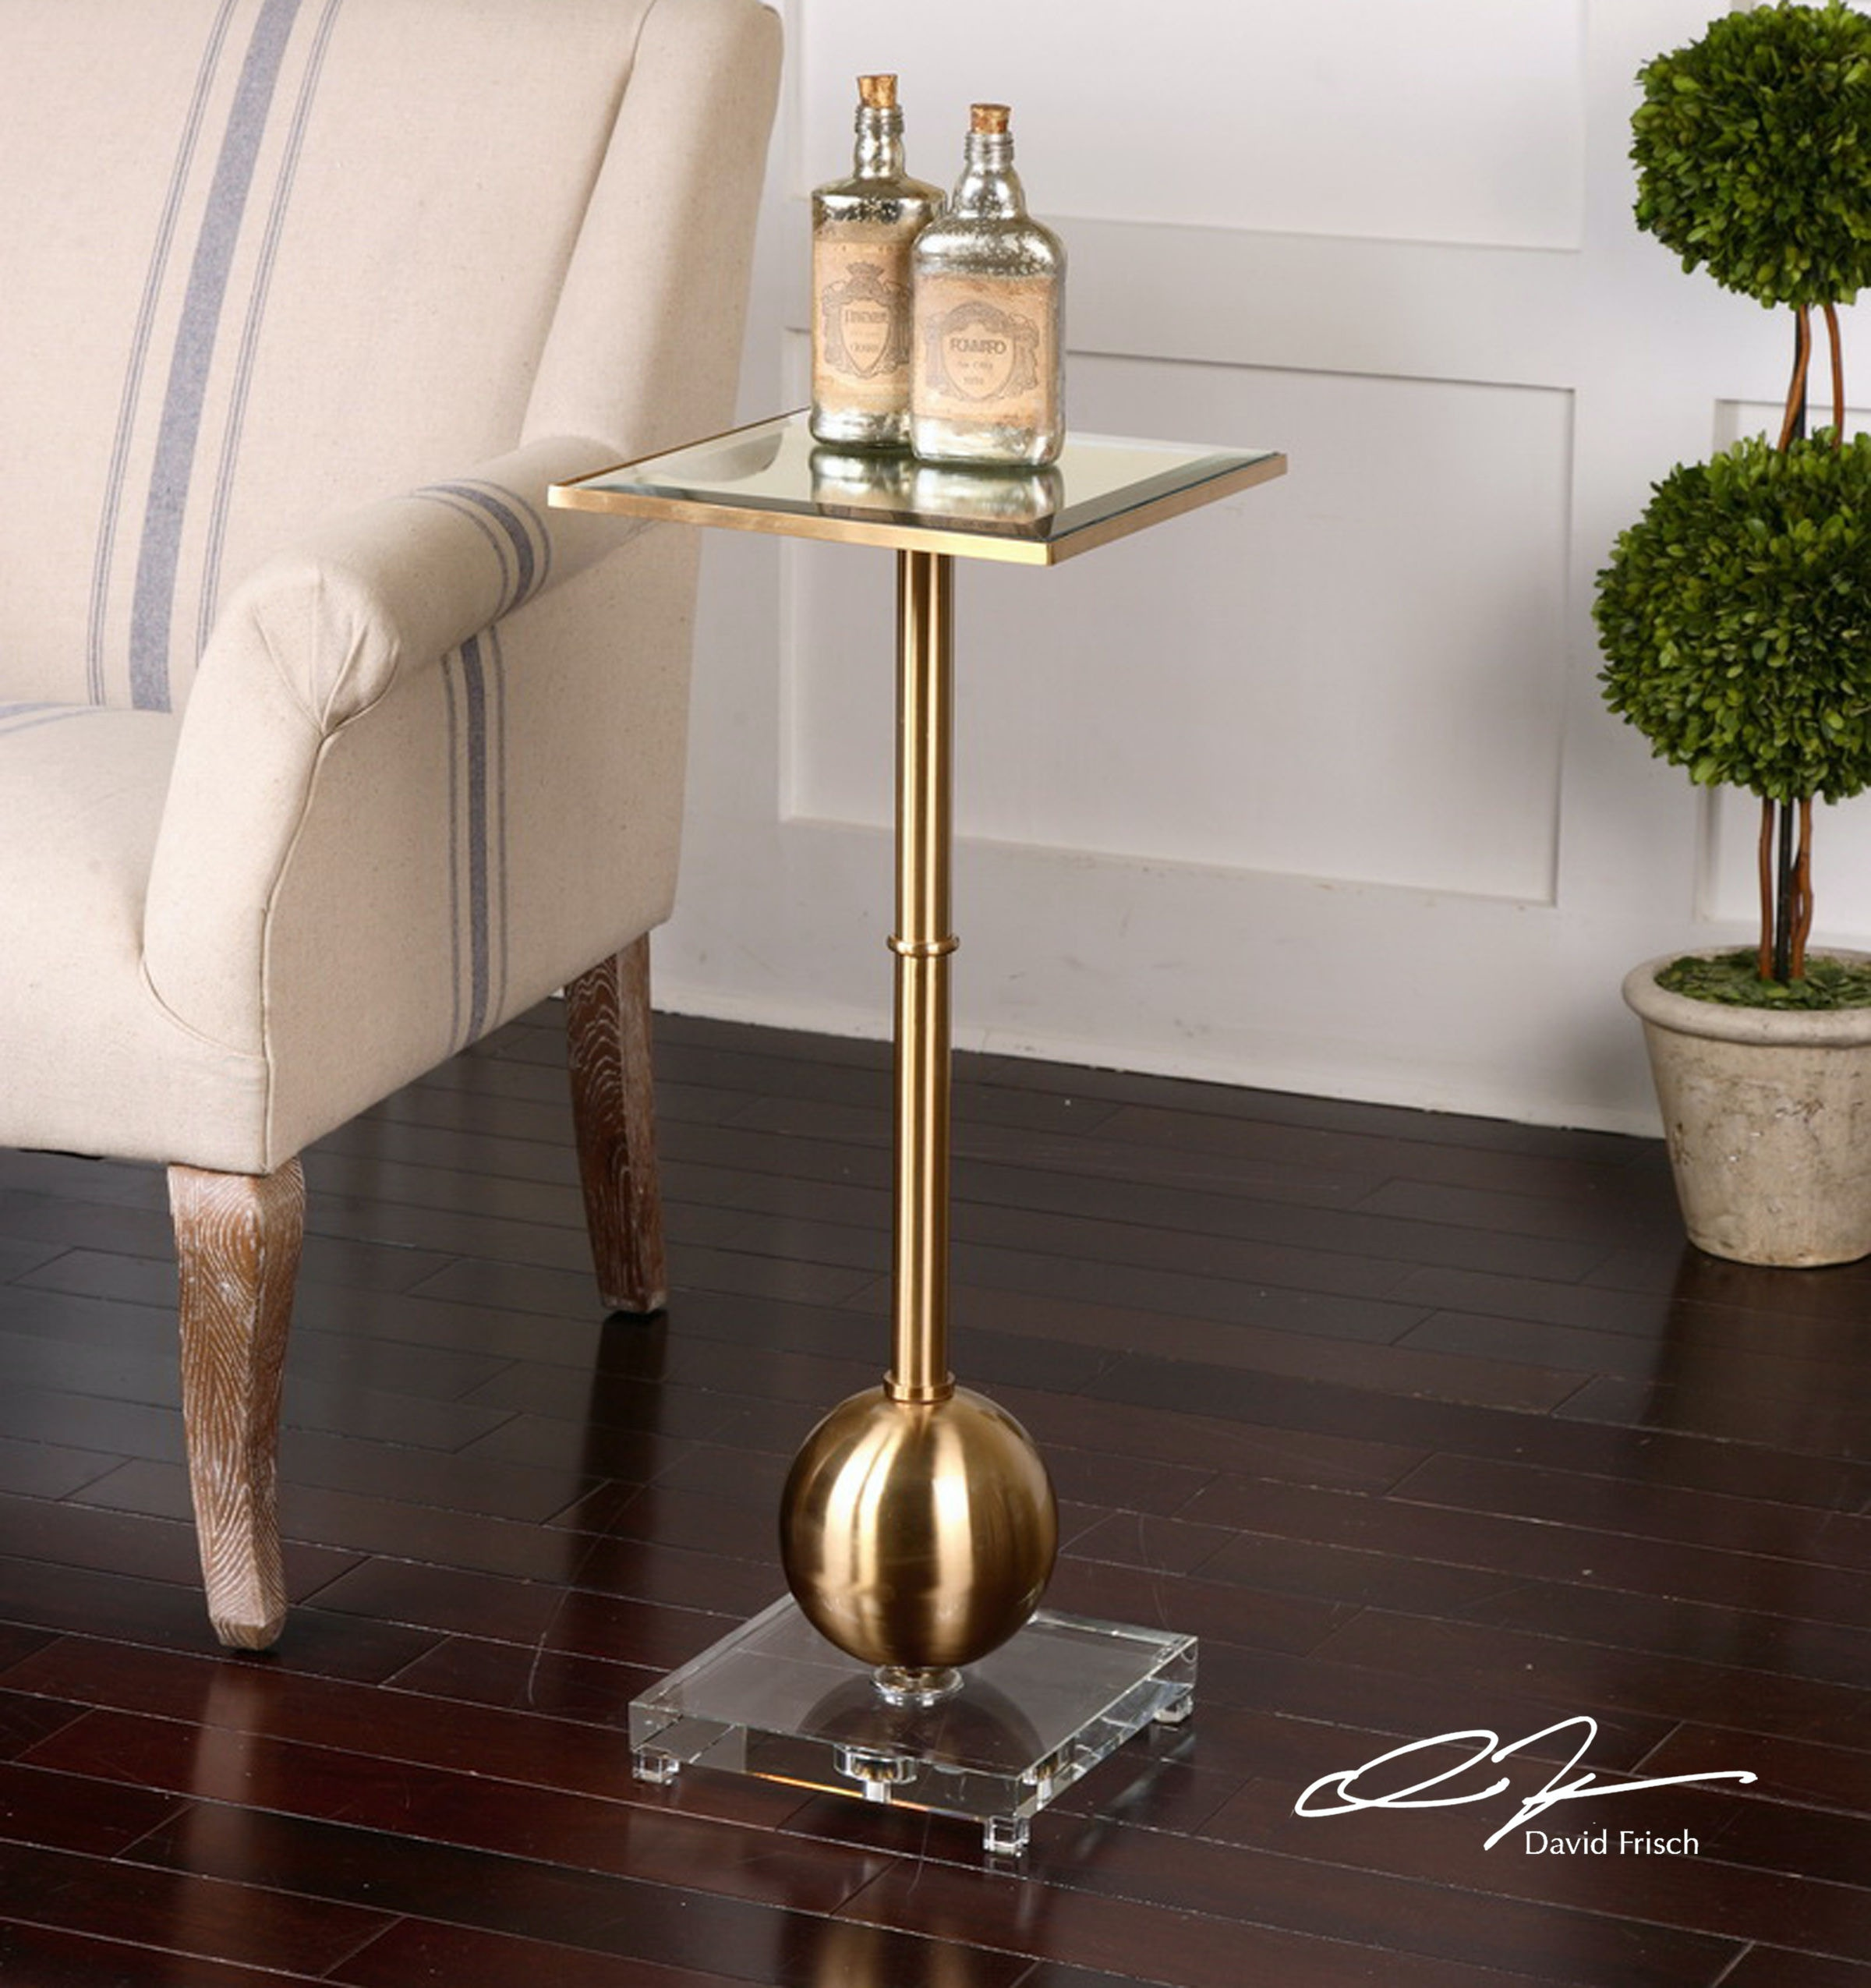 Medium image of uttermost laton mirrored accent table 24502